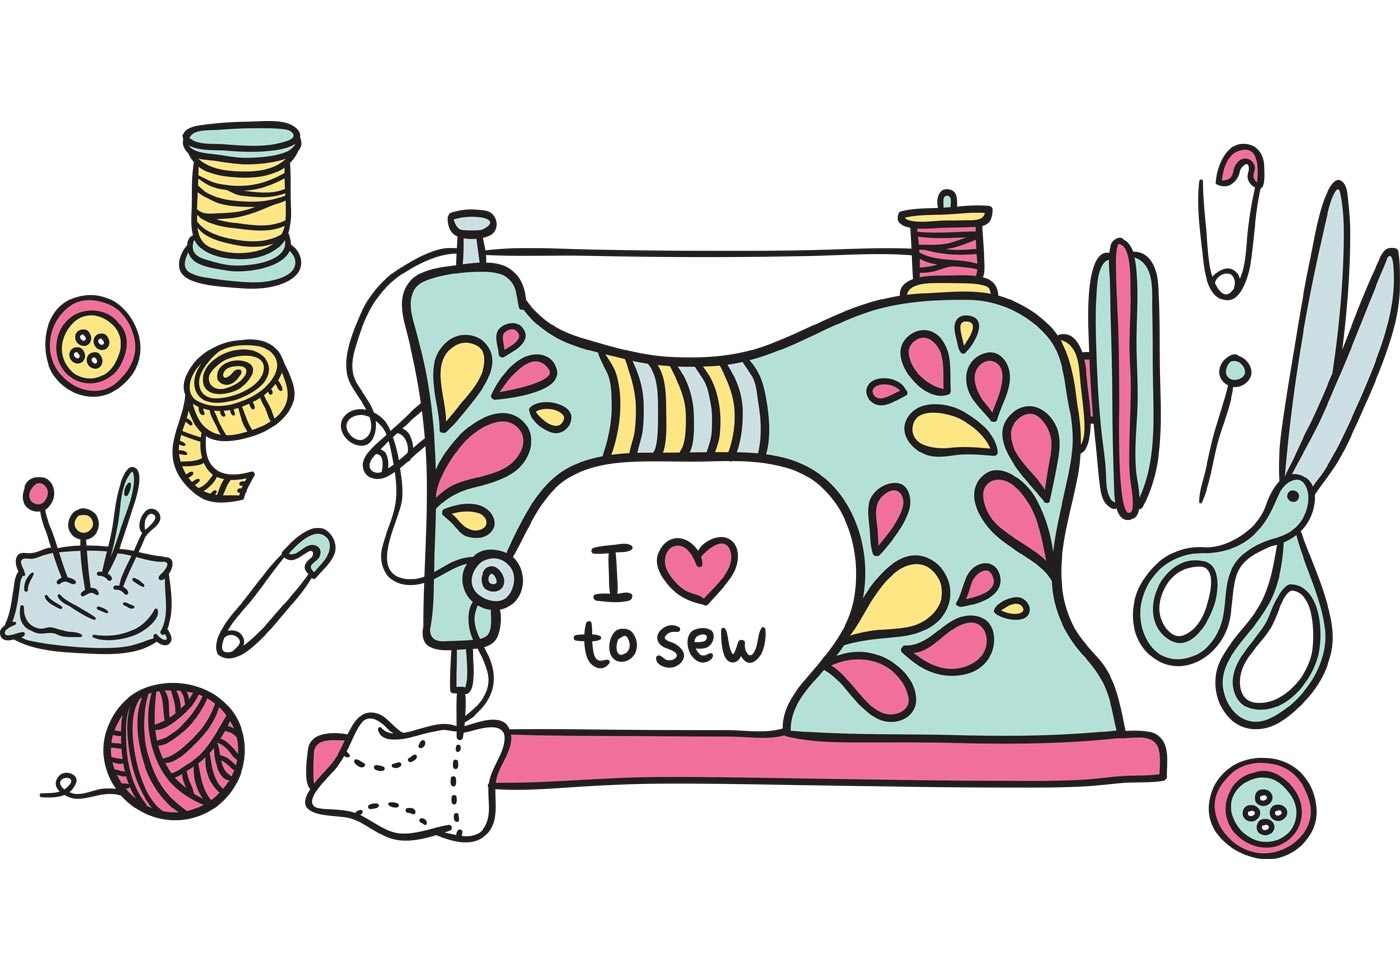 Sewing Machine clipart #2, Download drawings